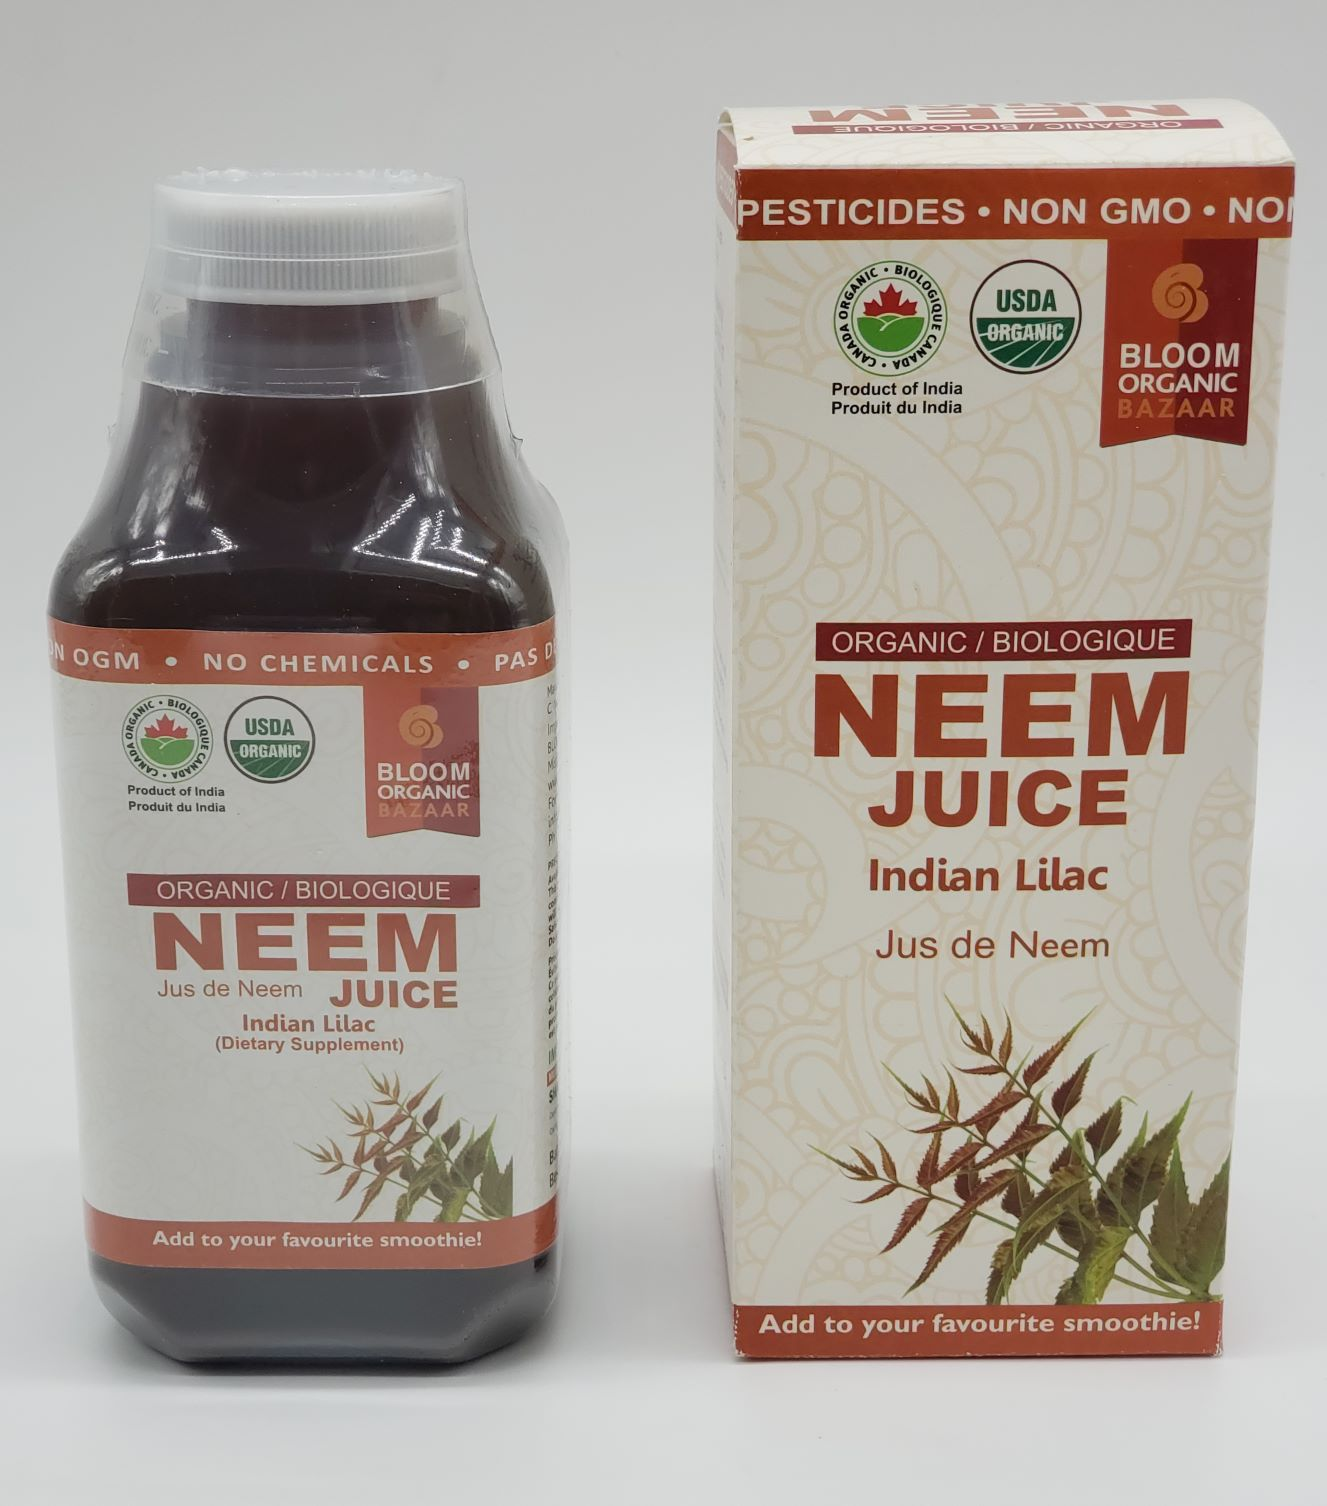 Bloom Organic Neem (Indian lilac) Juice 500ml